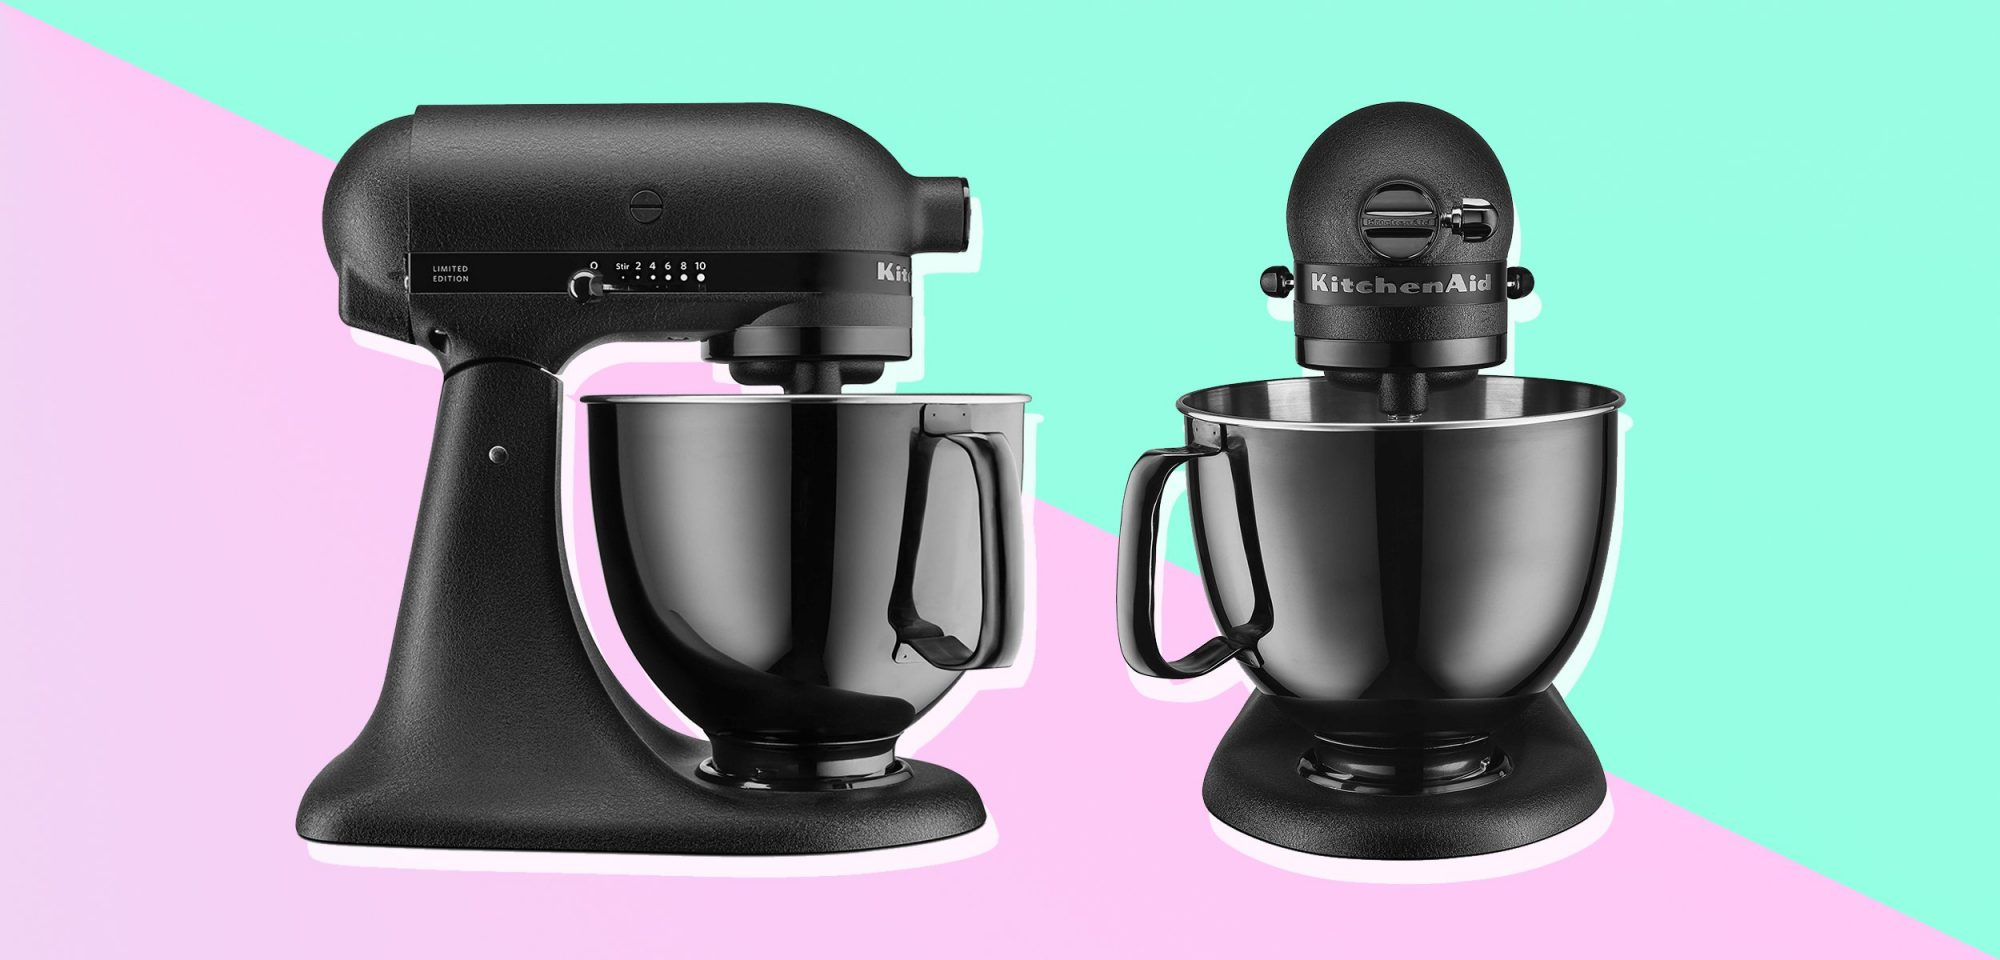 EC: Kitchenaid's Limited Edition All-Black Stand Mixer Is the Prettiest One Yet